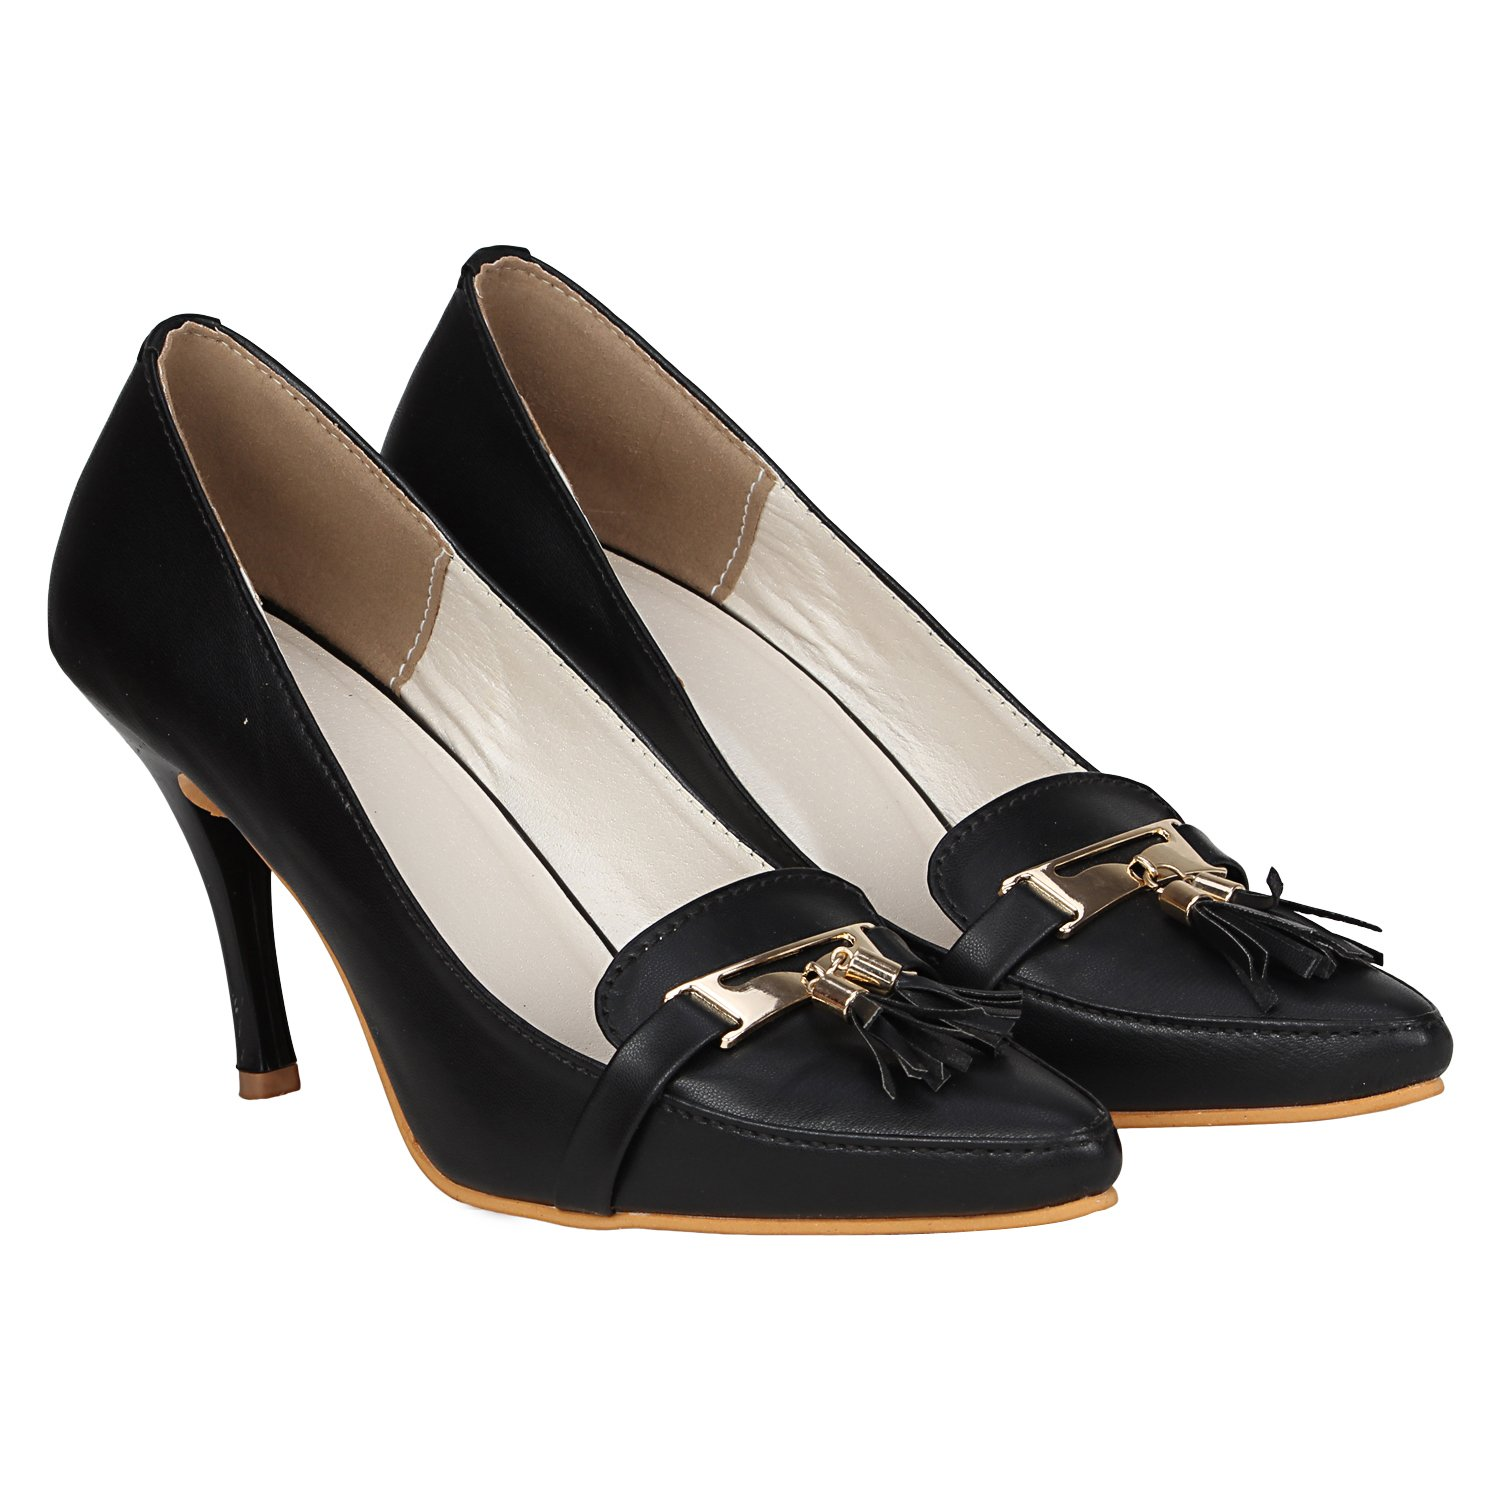 6a84cb58cb2 Misto VAGON Women and Girls Formal Shoes Formal Bellies Shoes with Heels  Bellies with Heels Shoes Bellies Casual Bellies Casual Shoes Pointed Shoes  ...